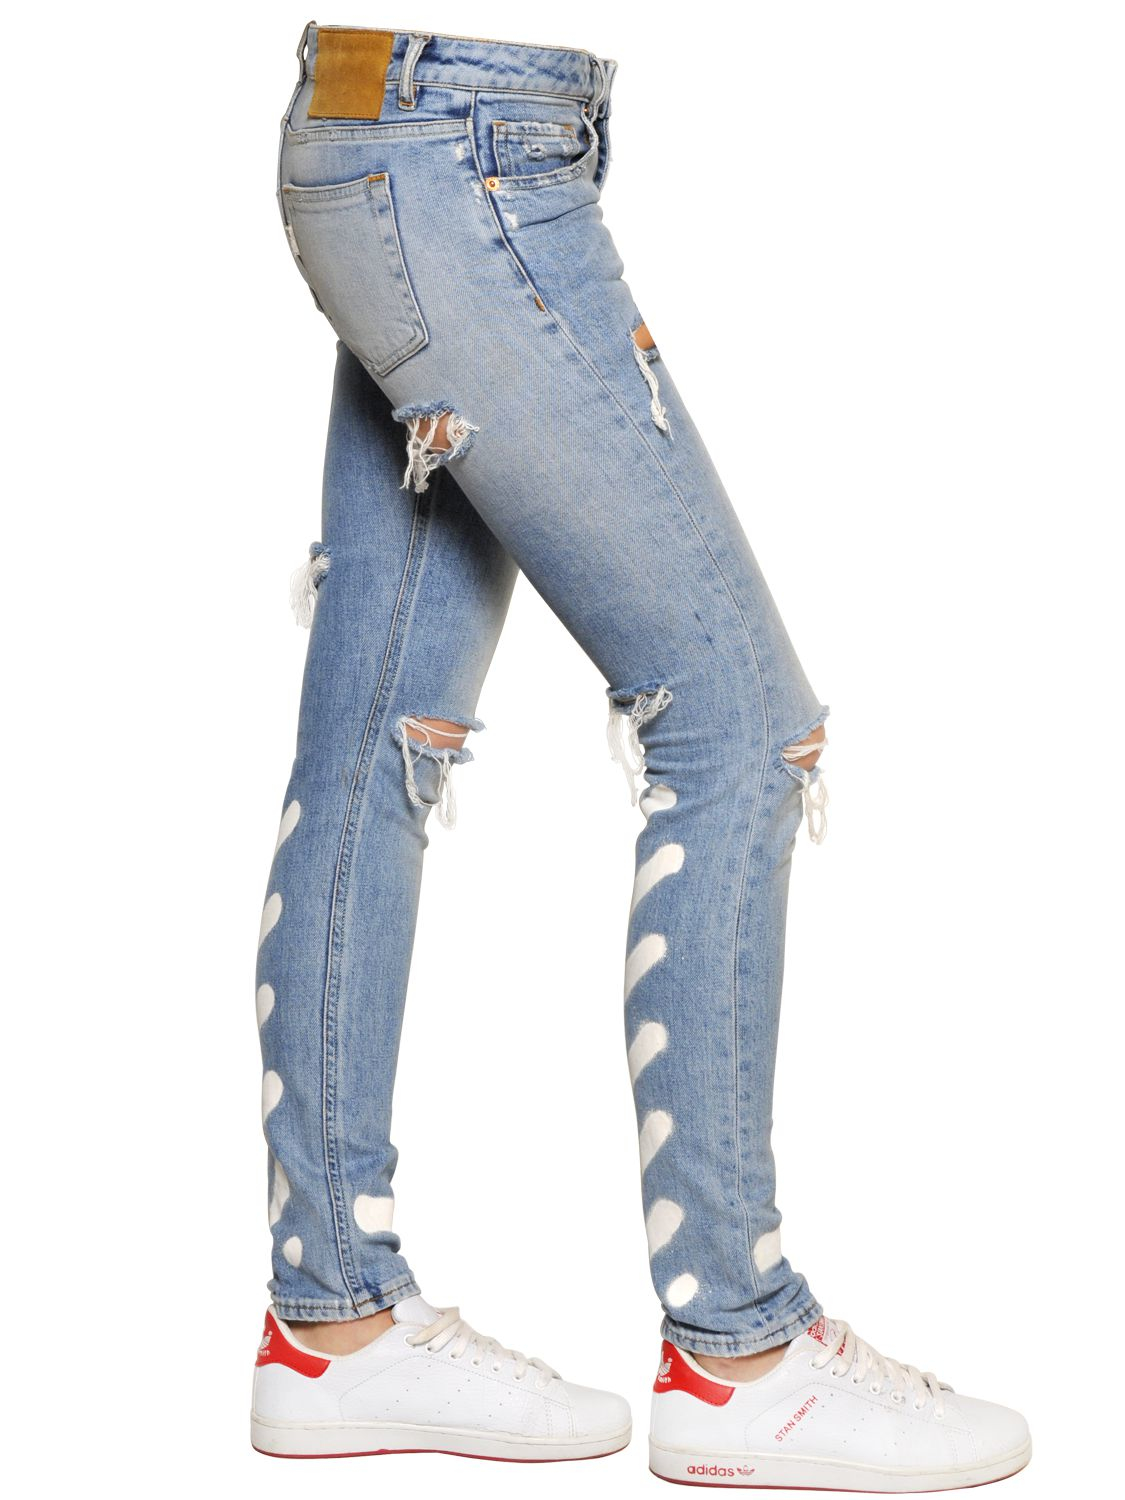 Off white women's jeans – Global fashion jeans collection